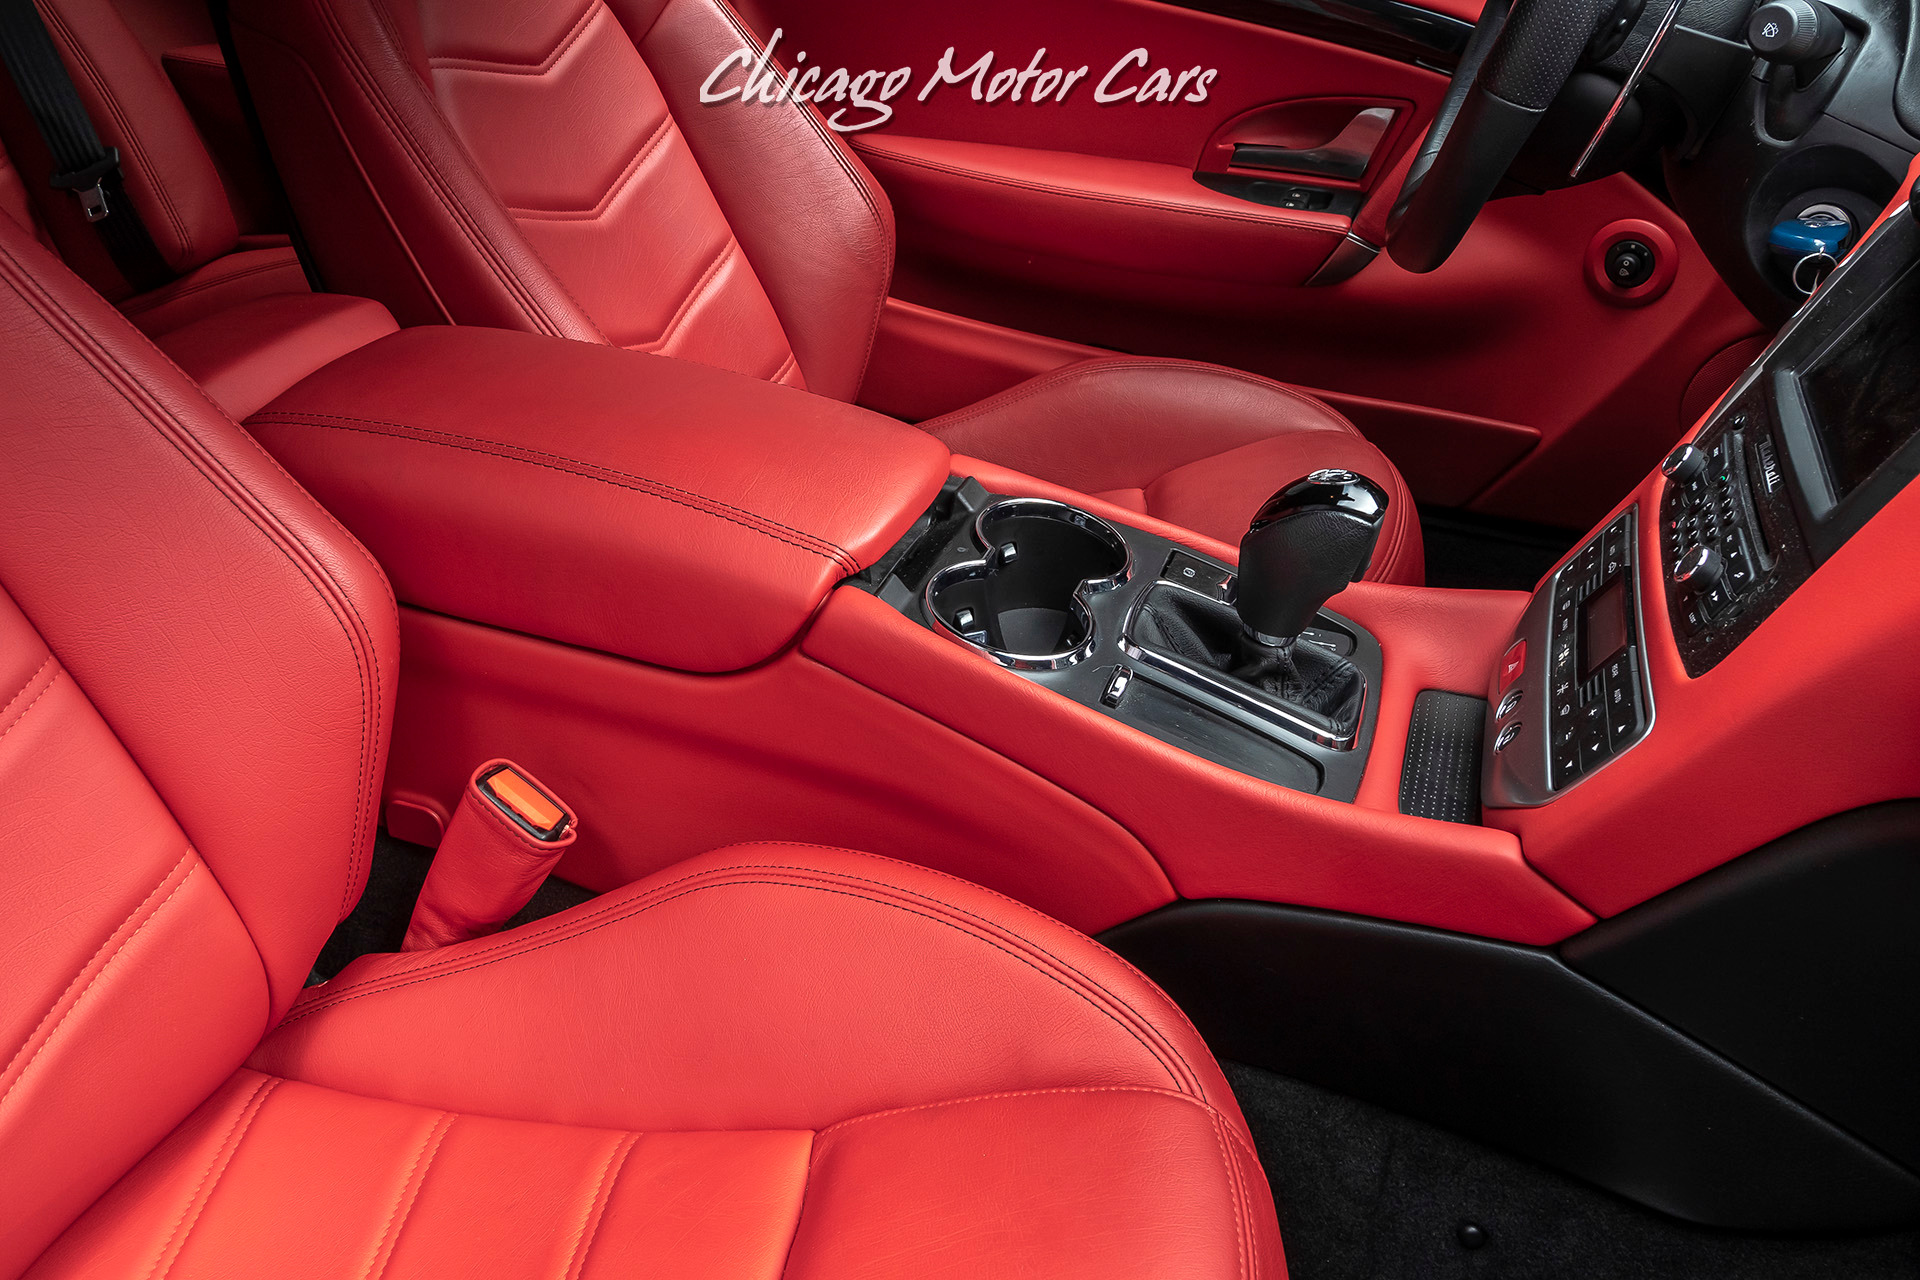 Used-2015-Maserati-GranTurismo-Sport-Coupe-FULL-RED-LEATHER-INTERIOR